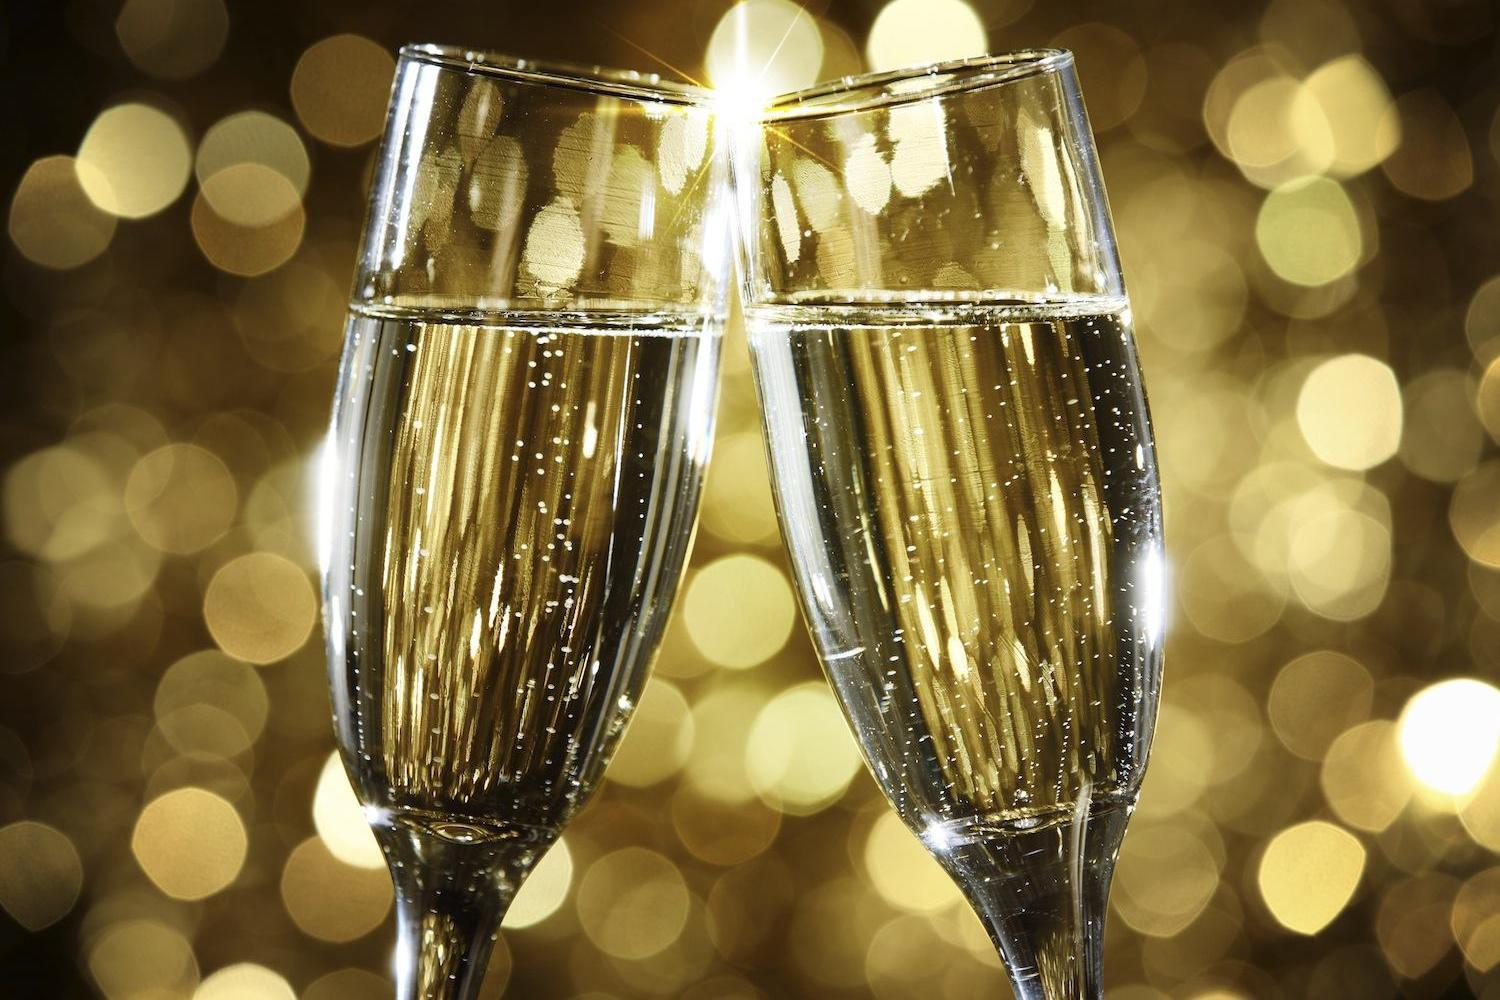 ...a toast, with love and light, to all that was and that will be!